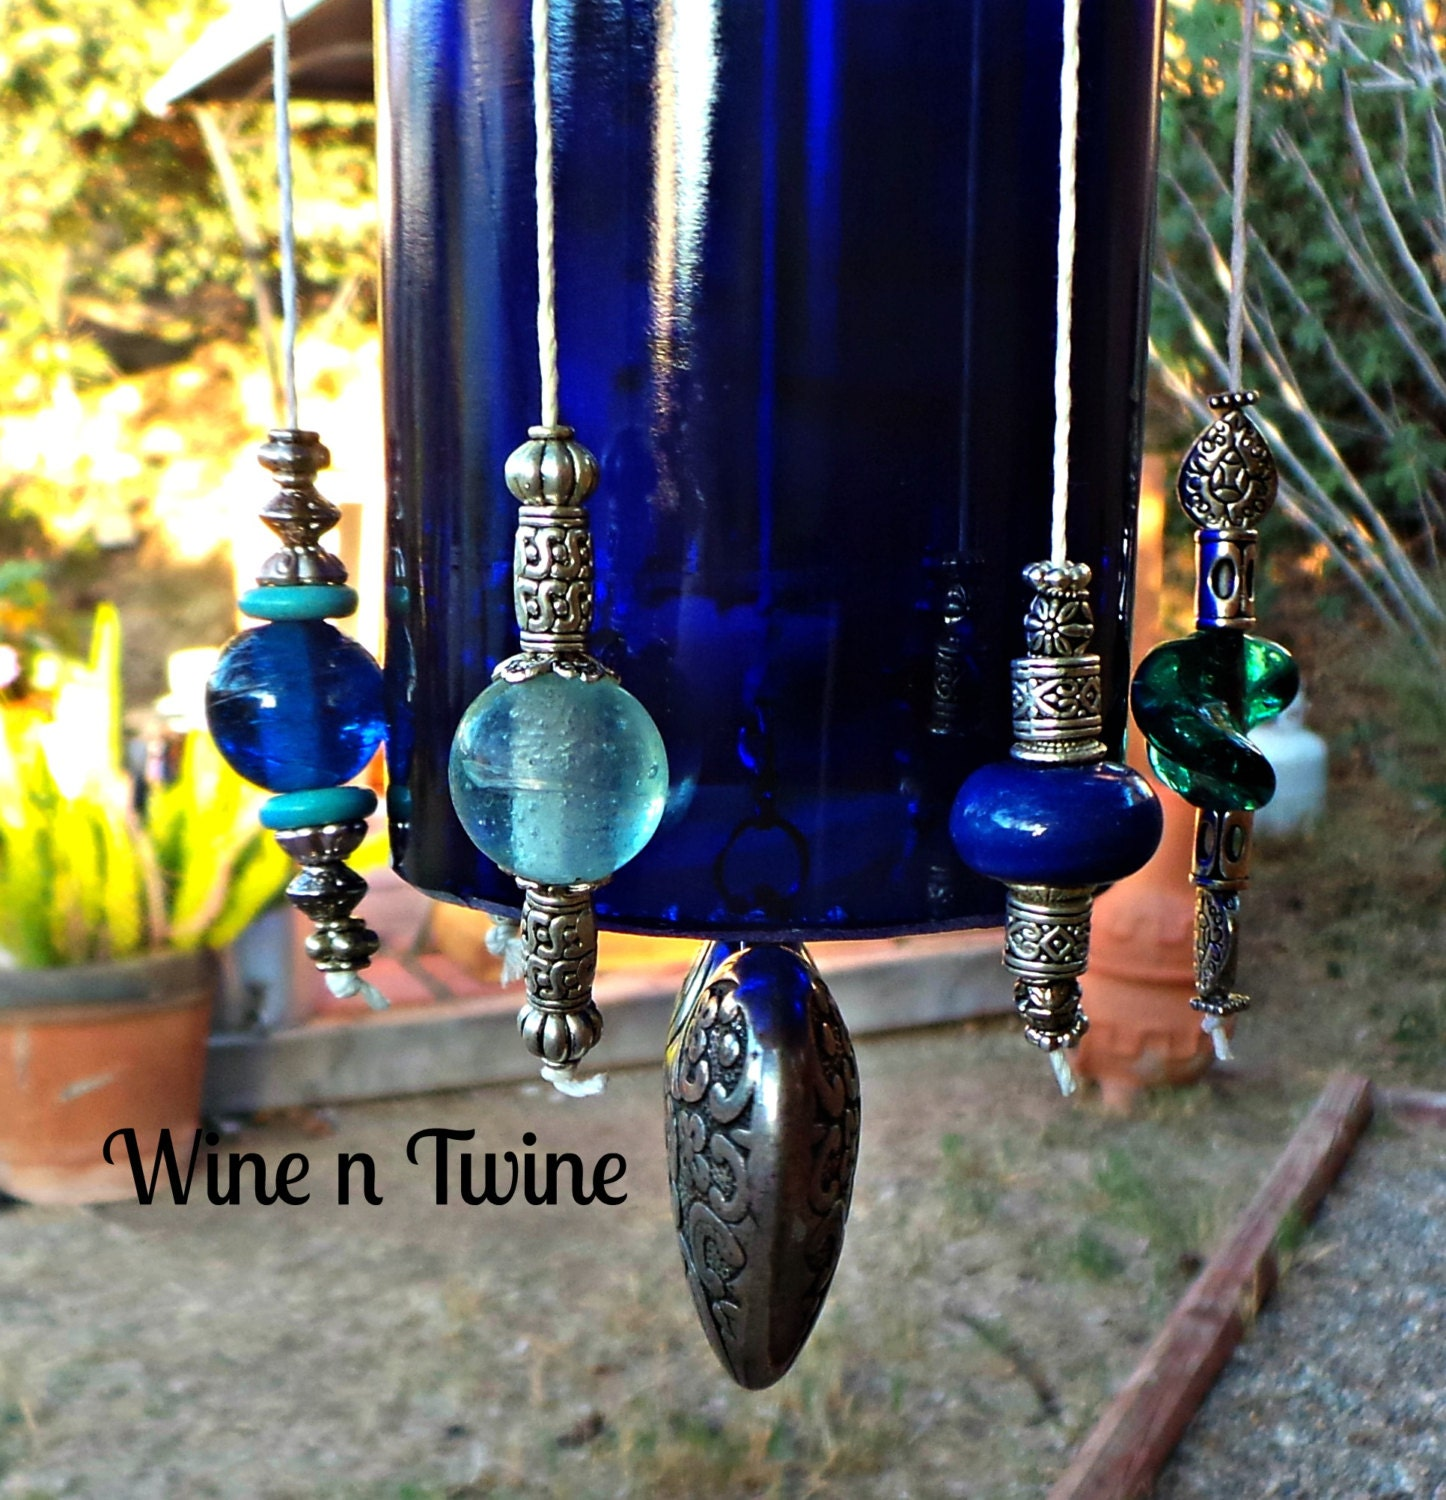 What To Make With Wine Bottles: Recycled Wine Bottle Wind Chime